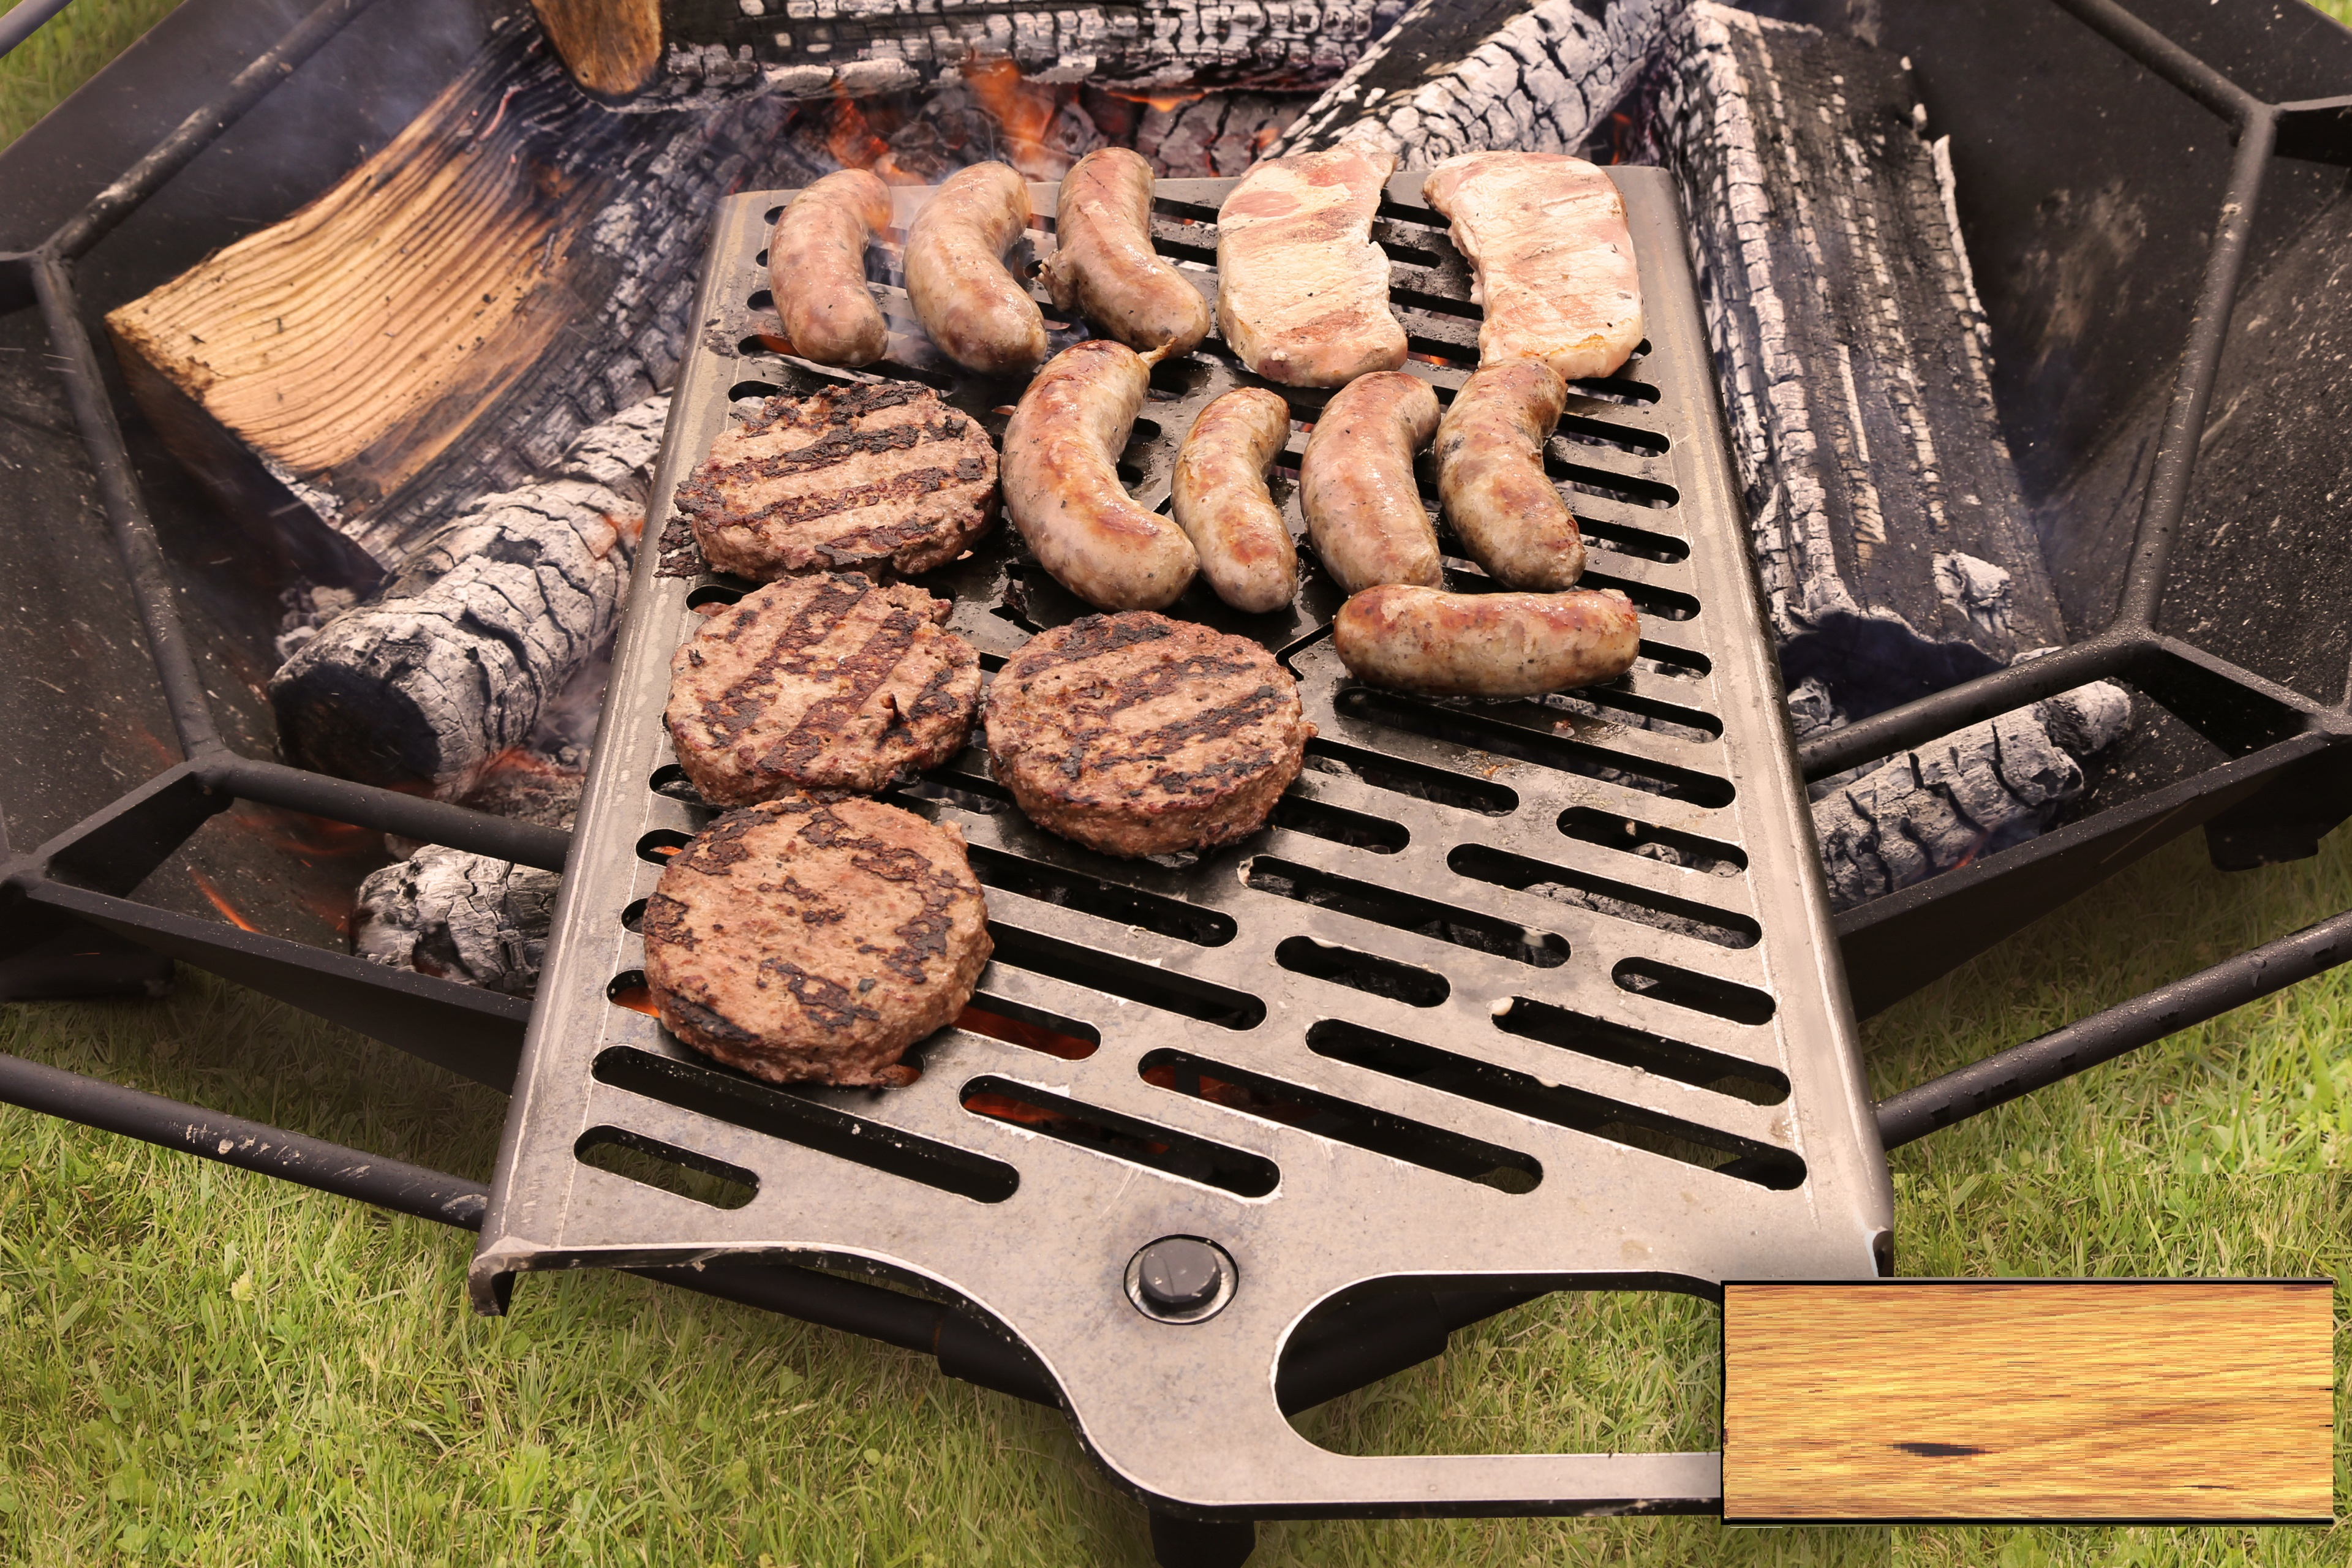 Burgers and sausages cooking on a grill over a fire pit